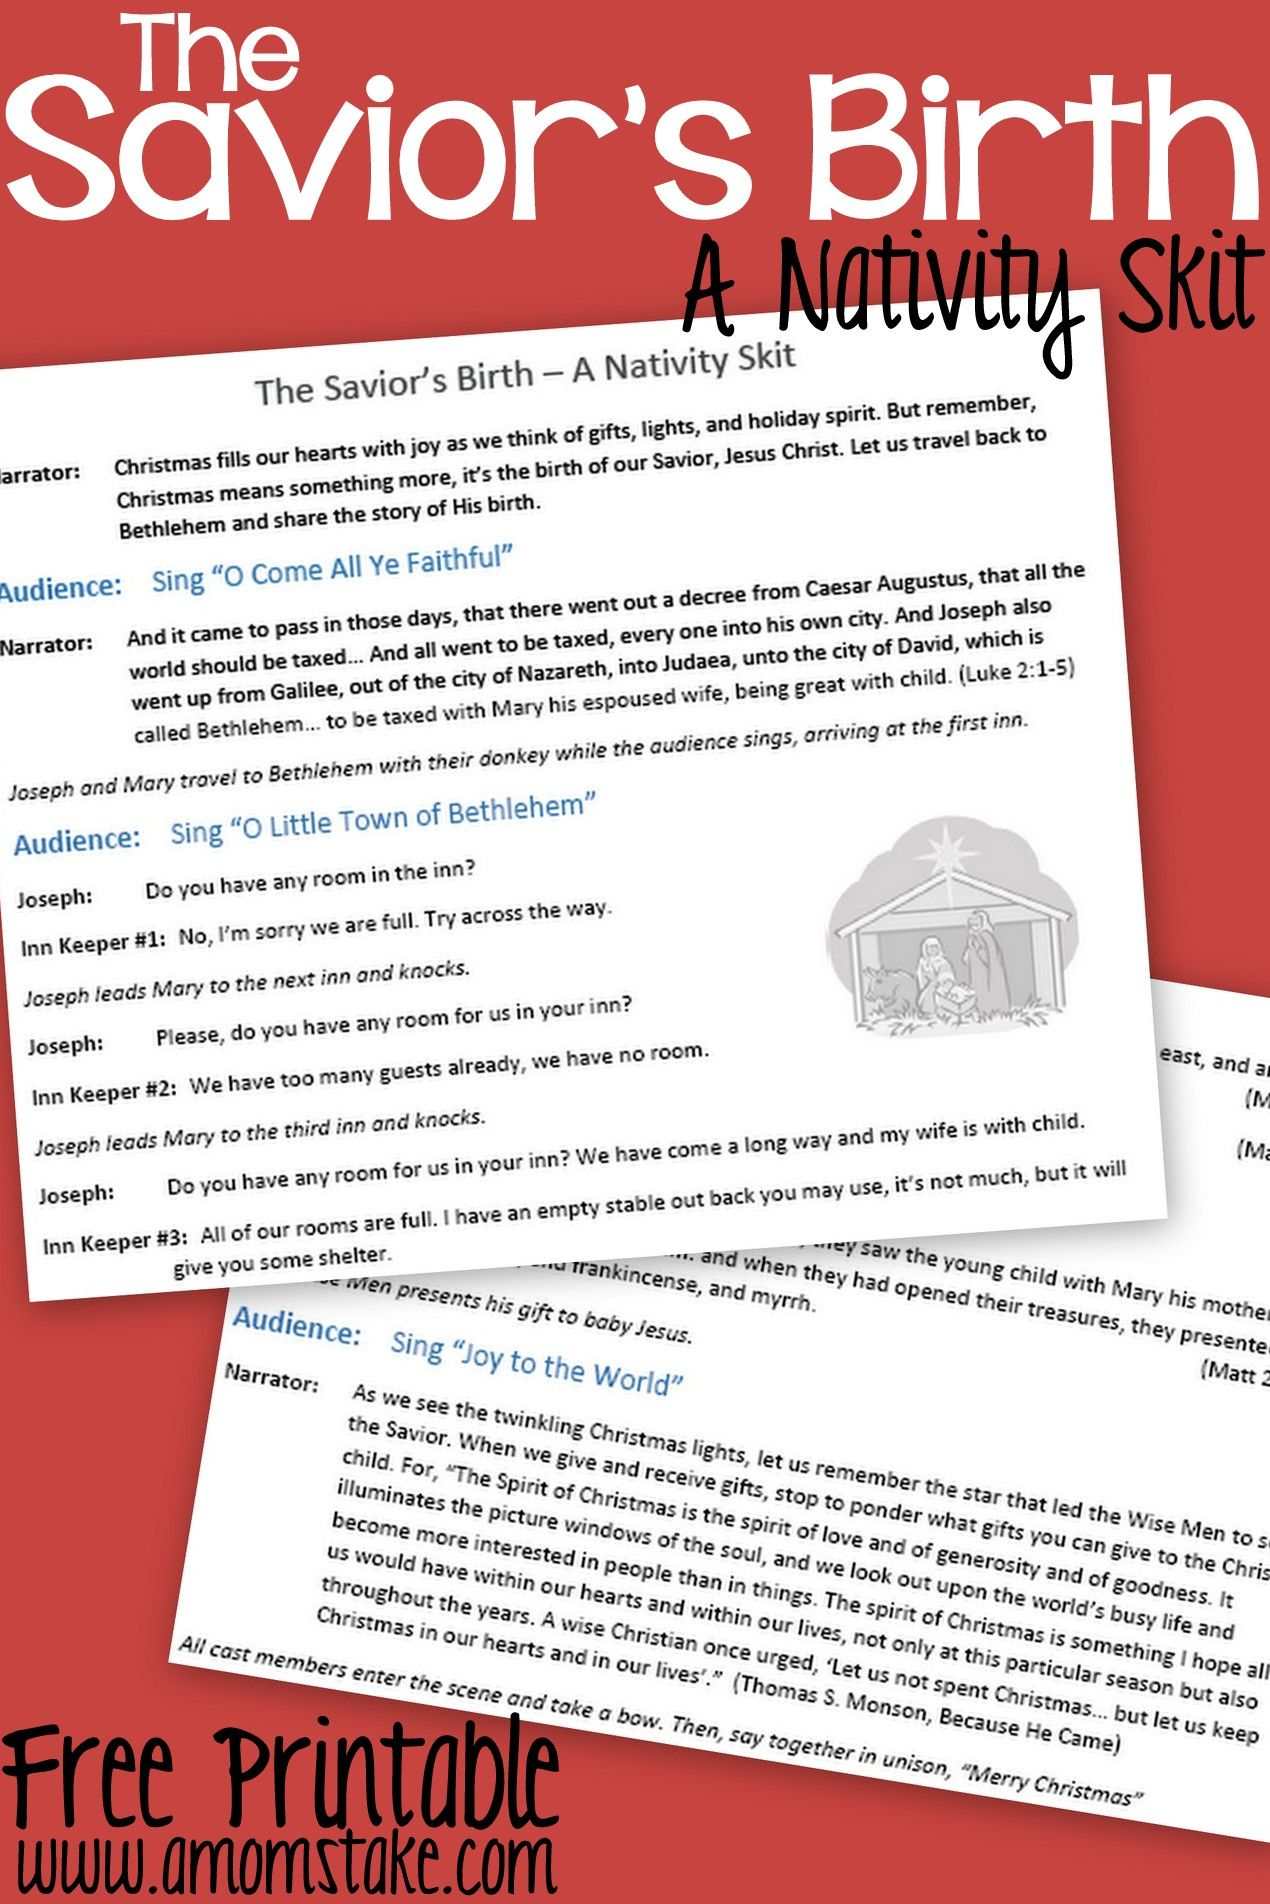 Free Printable Nativity Skit To Act Out The Birth Of The Savior Jesus Christ A Fun Activity For Christmas With The Kids